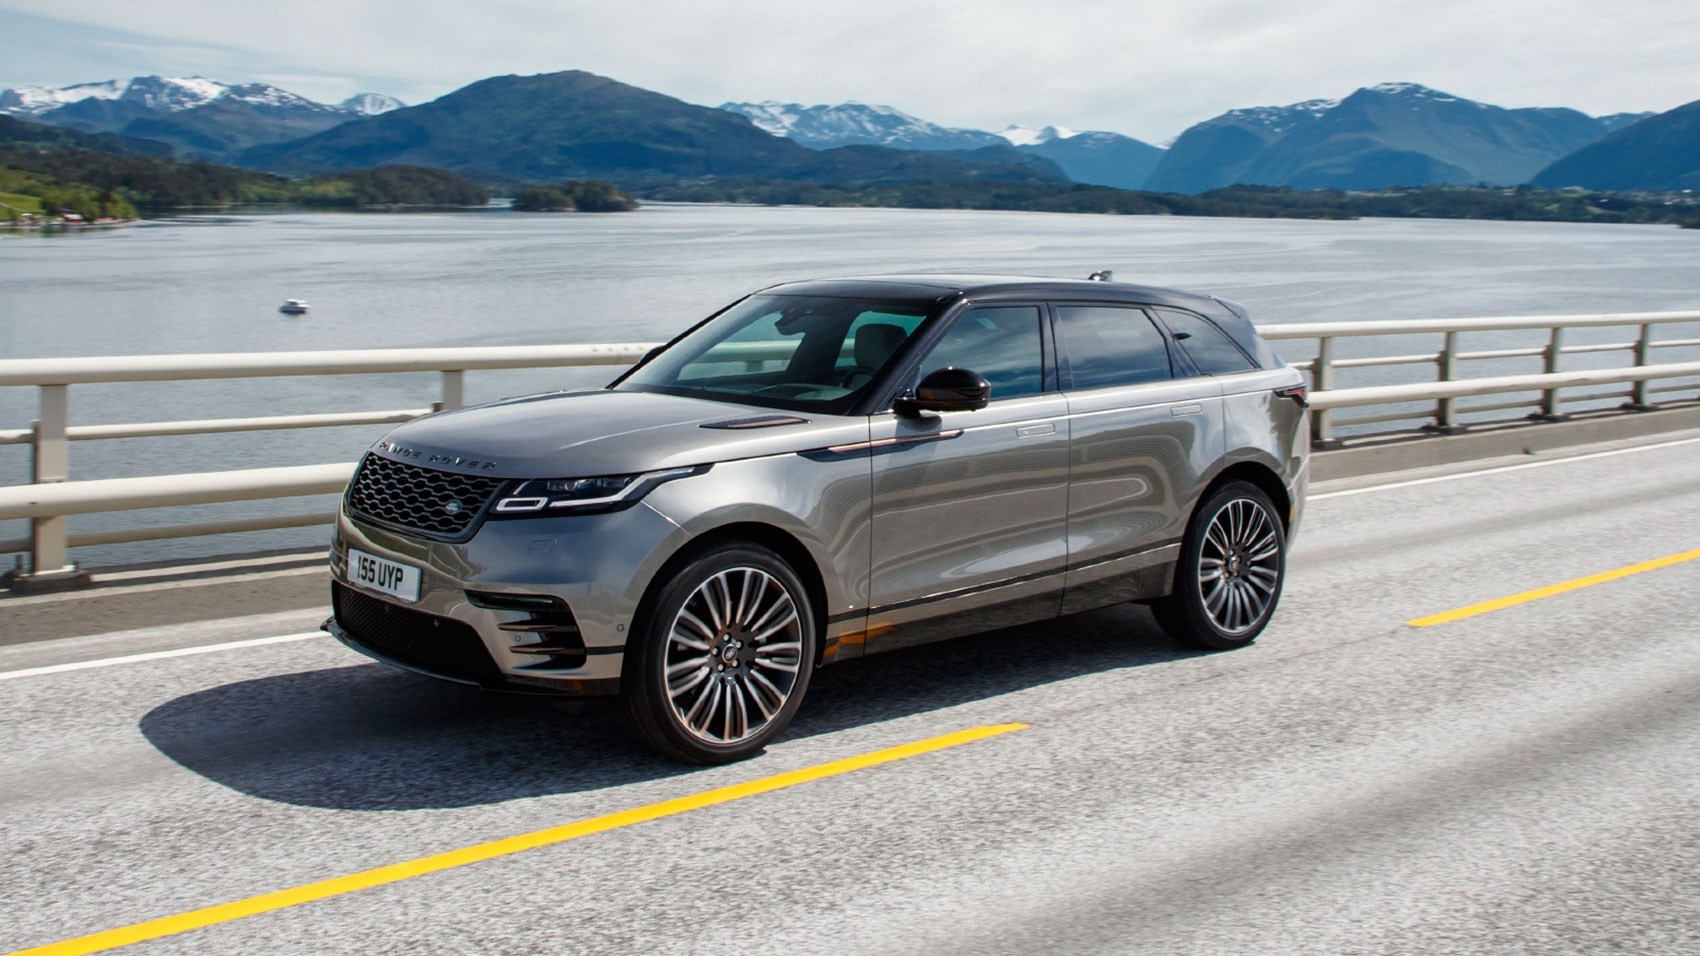 range rover velar first edition p380 2018 review by car. Black Bedroom Furniture Sets. Home Design Ideas